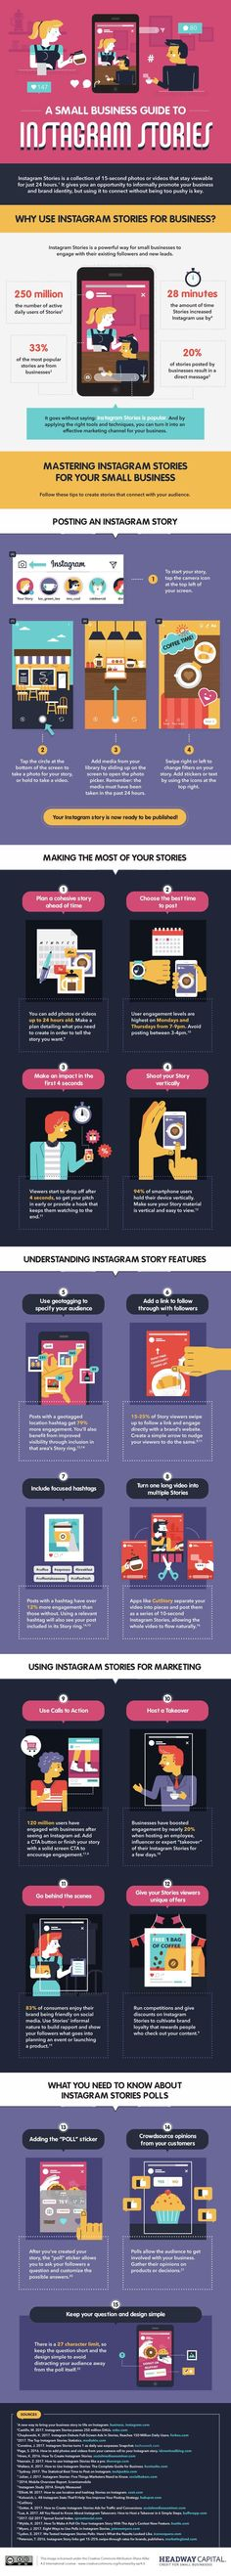 A Small Business Guide to Instagram Stories - #infographic #InphographicInfographics